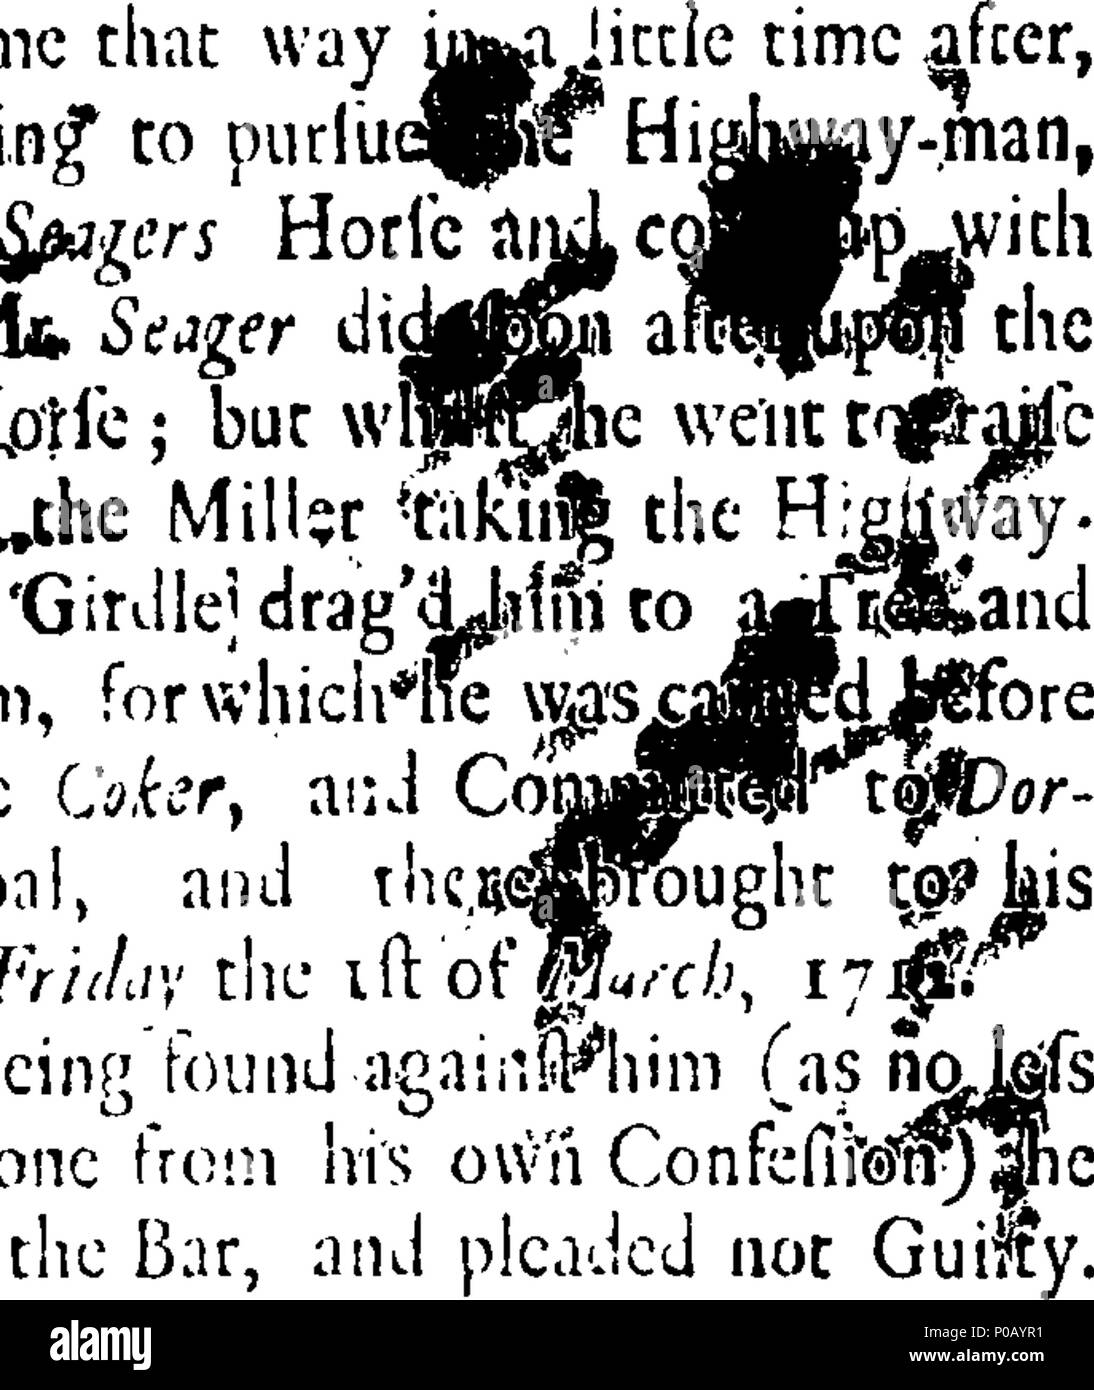 . English: Fleuron from book: An account of the tryal and examination of Joseph Reader, a miller, living at Shaftesbury in Dorsetshire; who was try'd on Friday, March 21, at the Assizes held at Dorchester, before the Honourable Mr. Baron Bury, for hanging one James Smith, a highway-man (whom he had taken) on a Tree, contrary to Law. With an Account how he was Acquitted, and had 30 l. given him by the Company for his Enccouragement, with other Memorable Passages at the Tryal. To which is also added an Account of the Dying-Speech the Highway-Man made to him before his Execution, and other Words  - Stock Image